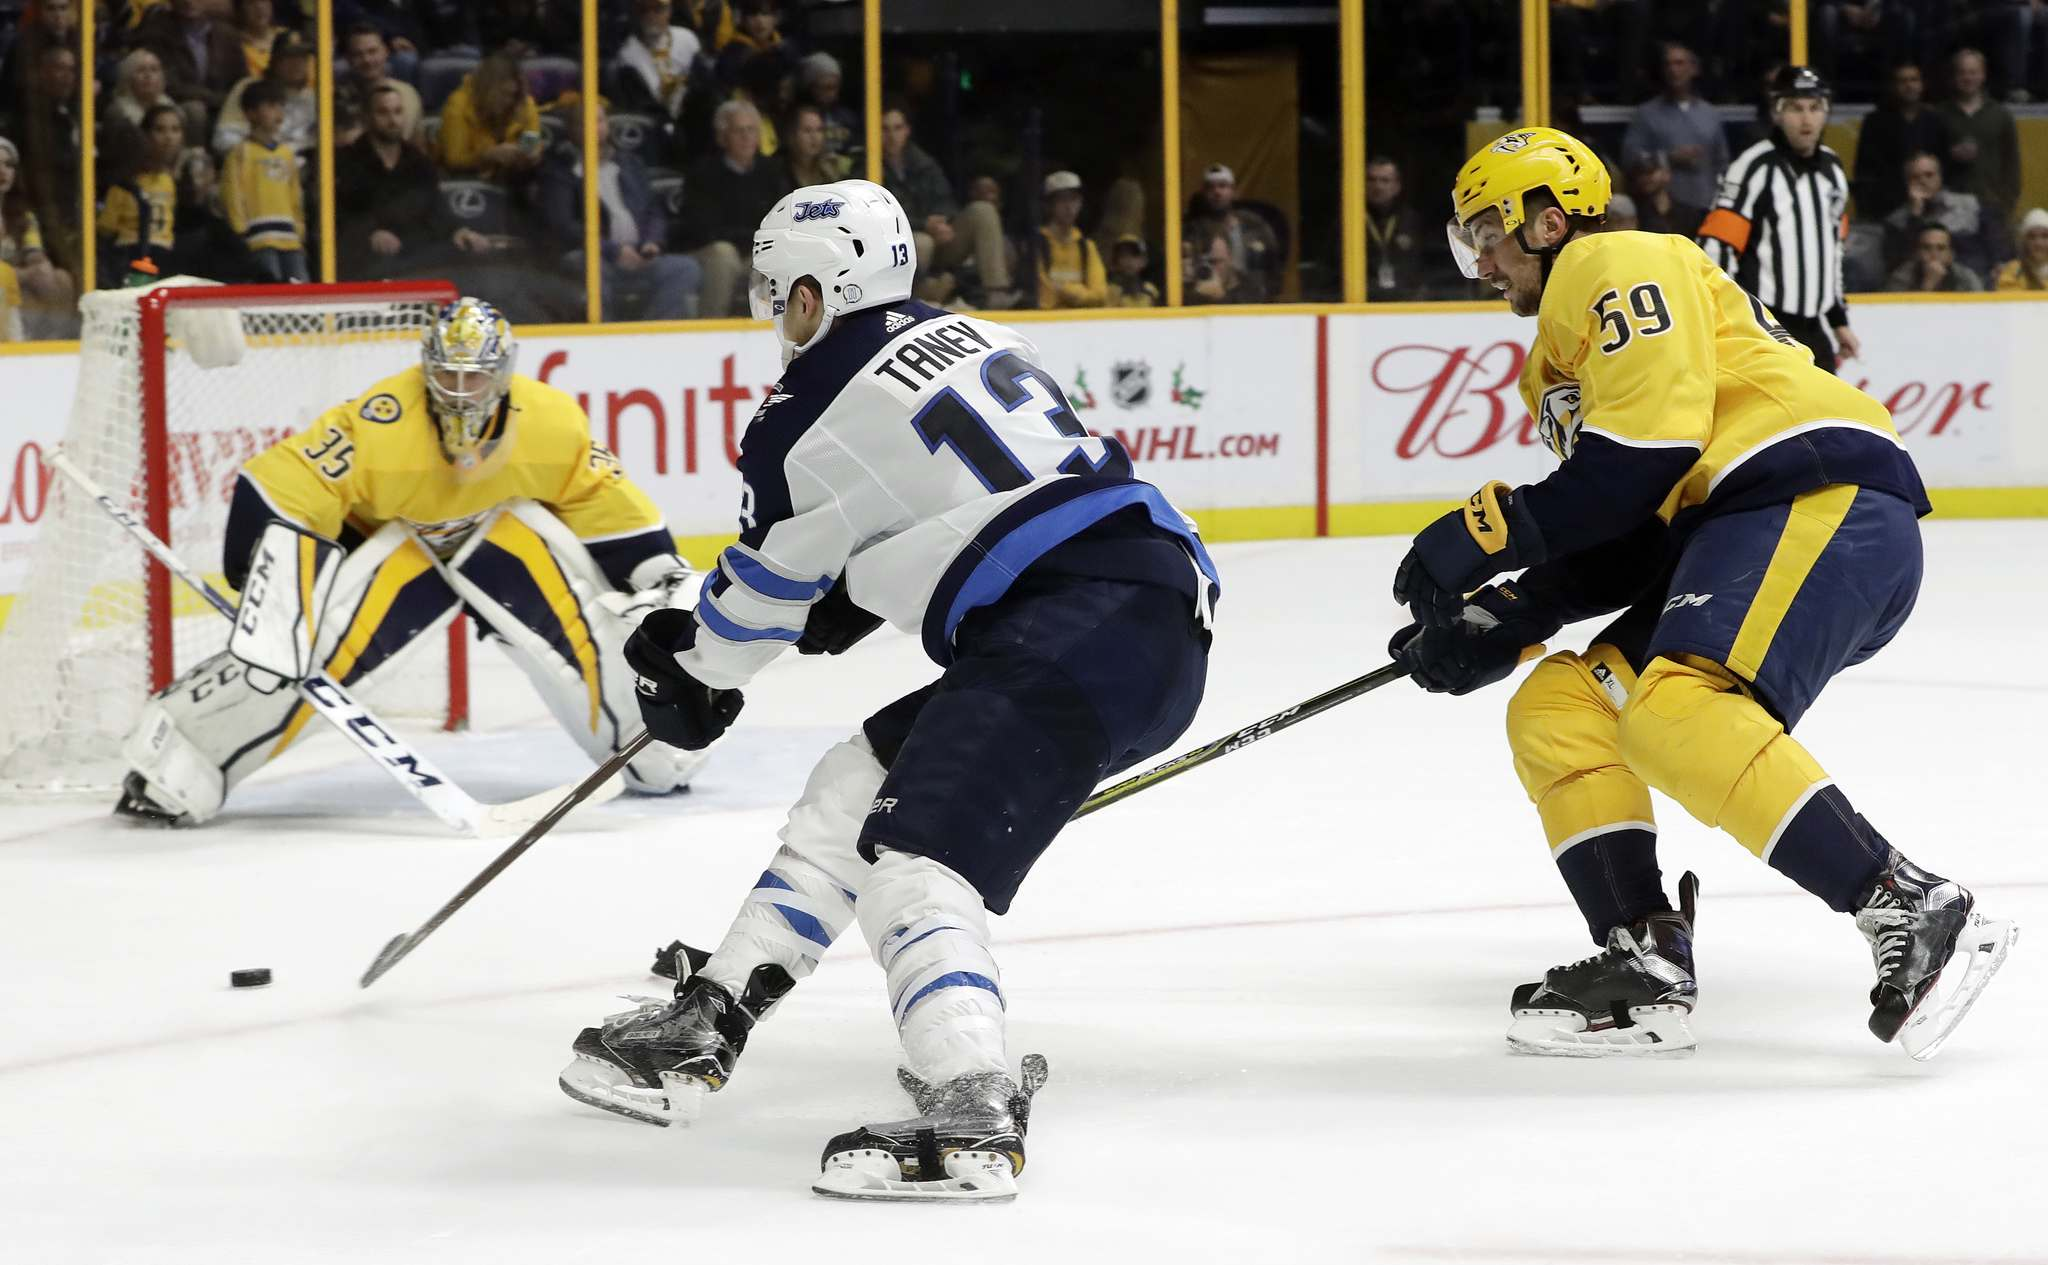 Predators fall to Jets 6-4